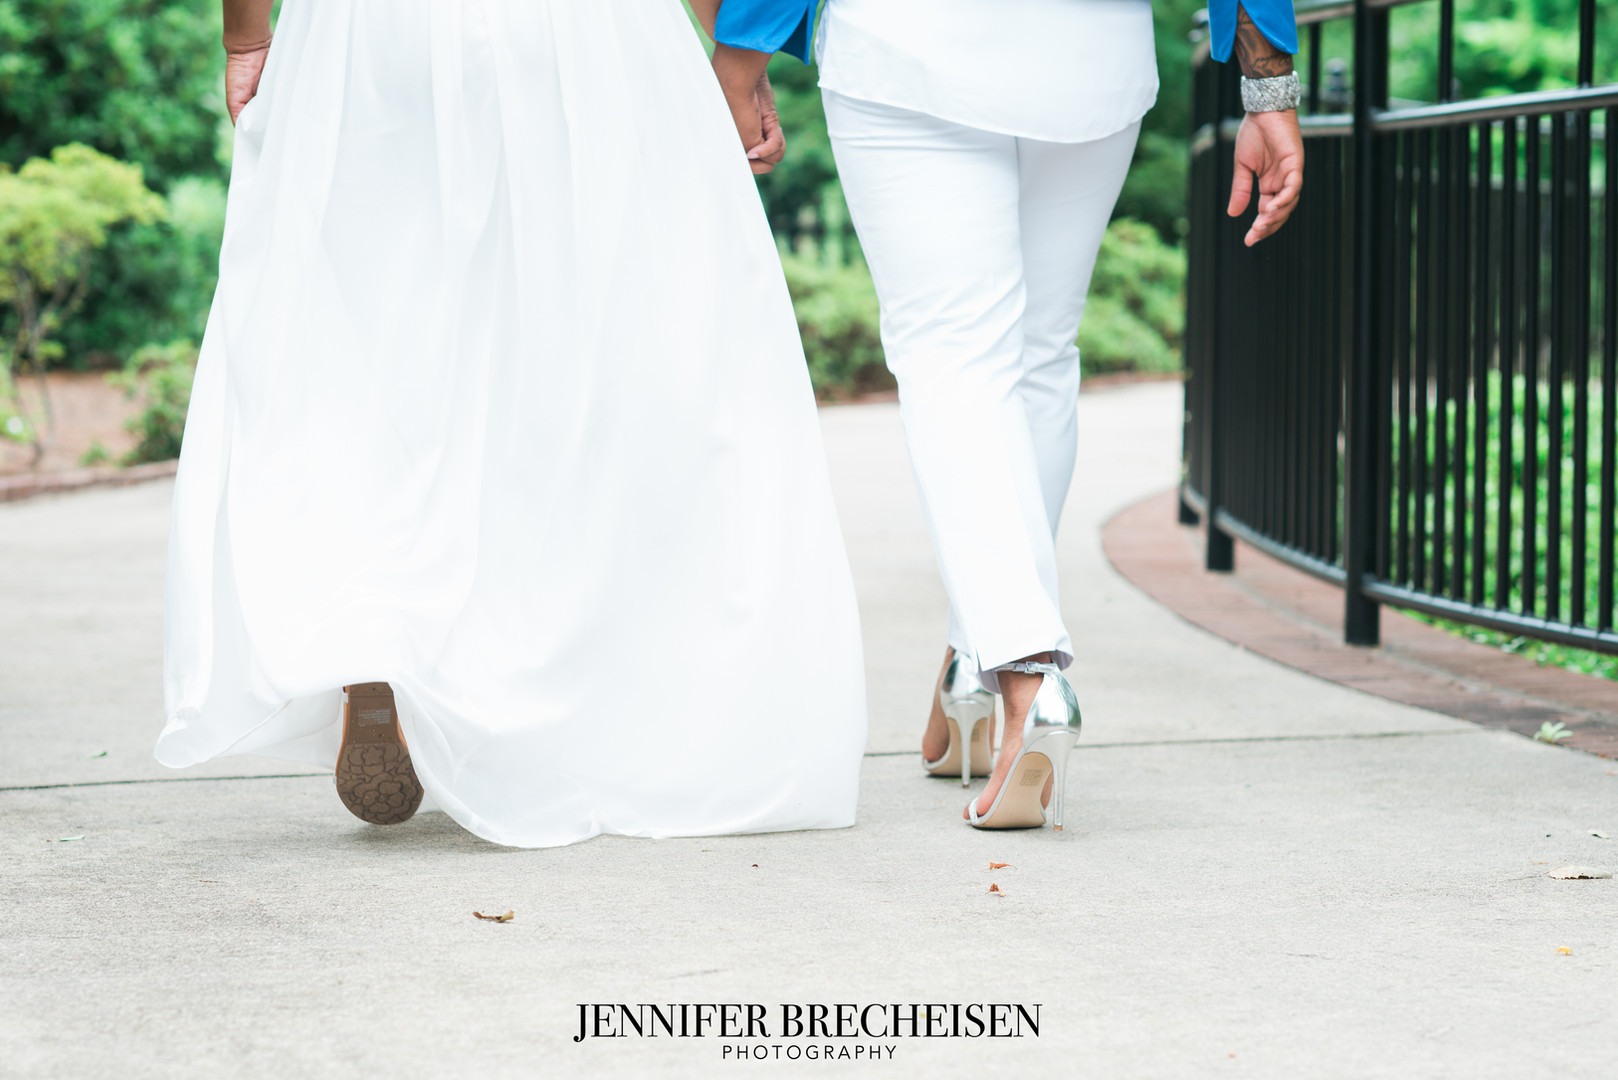 SAME SEX WEDDING PHOTOGRAPHER CHARLESTON SC